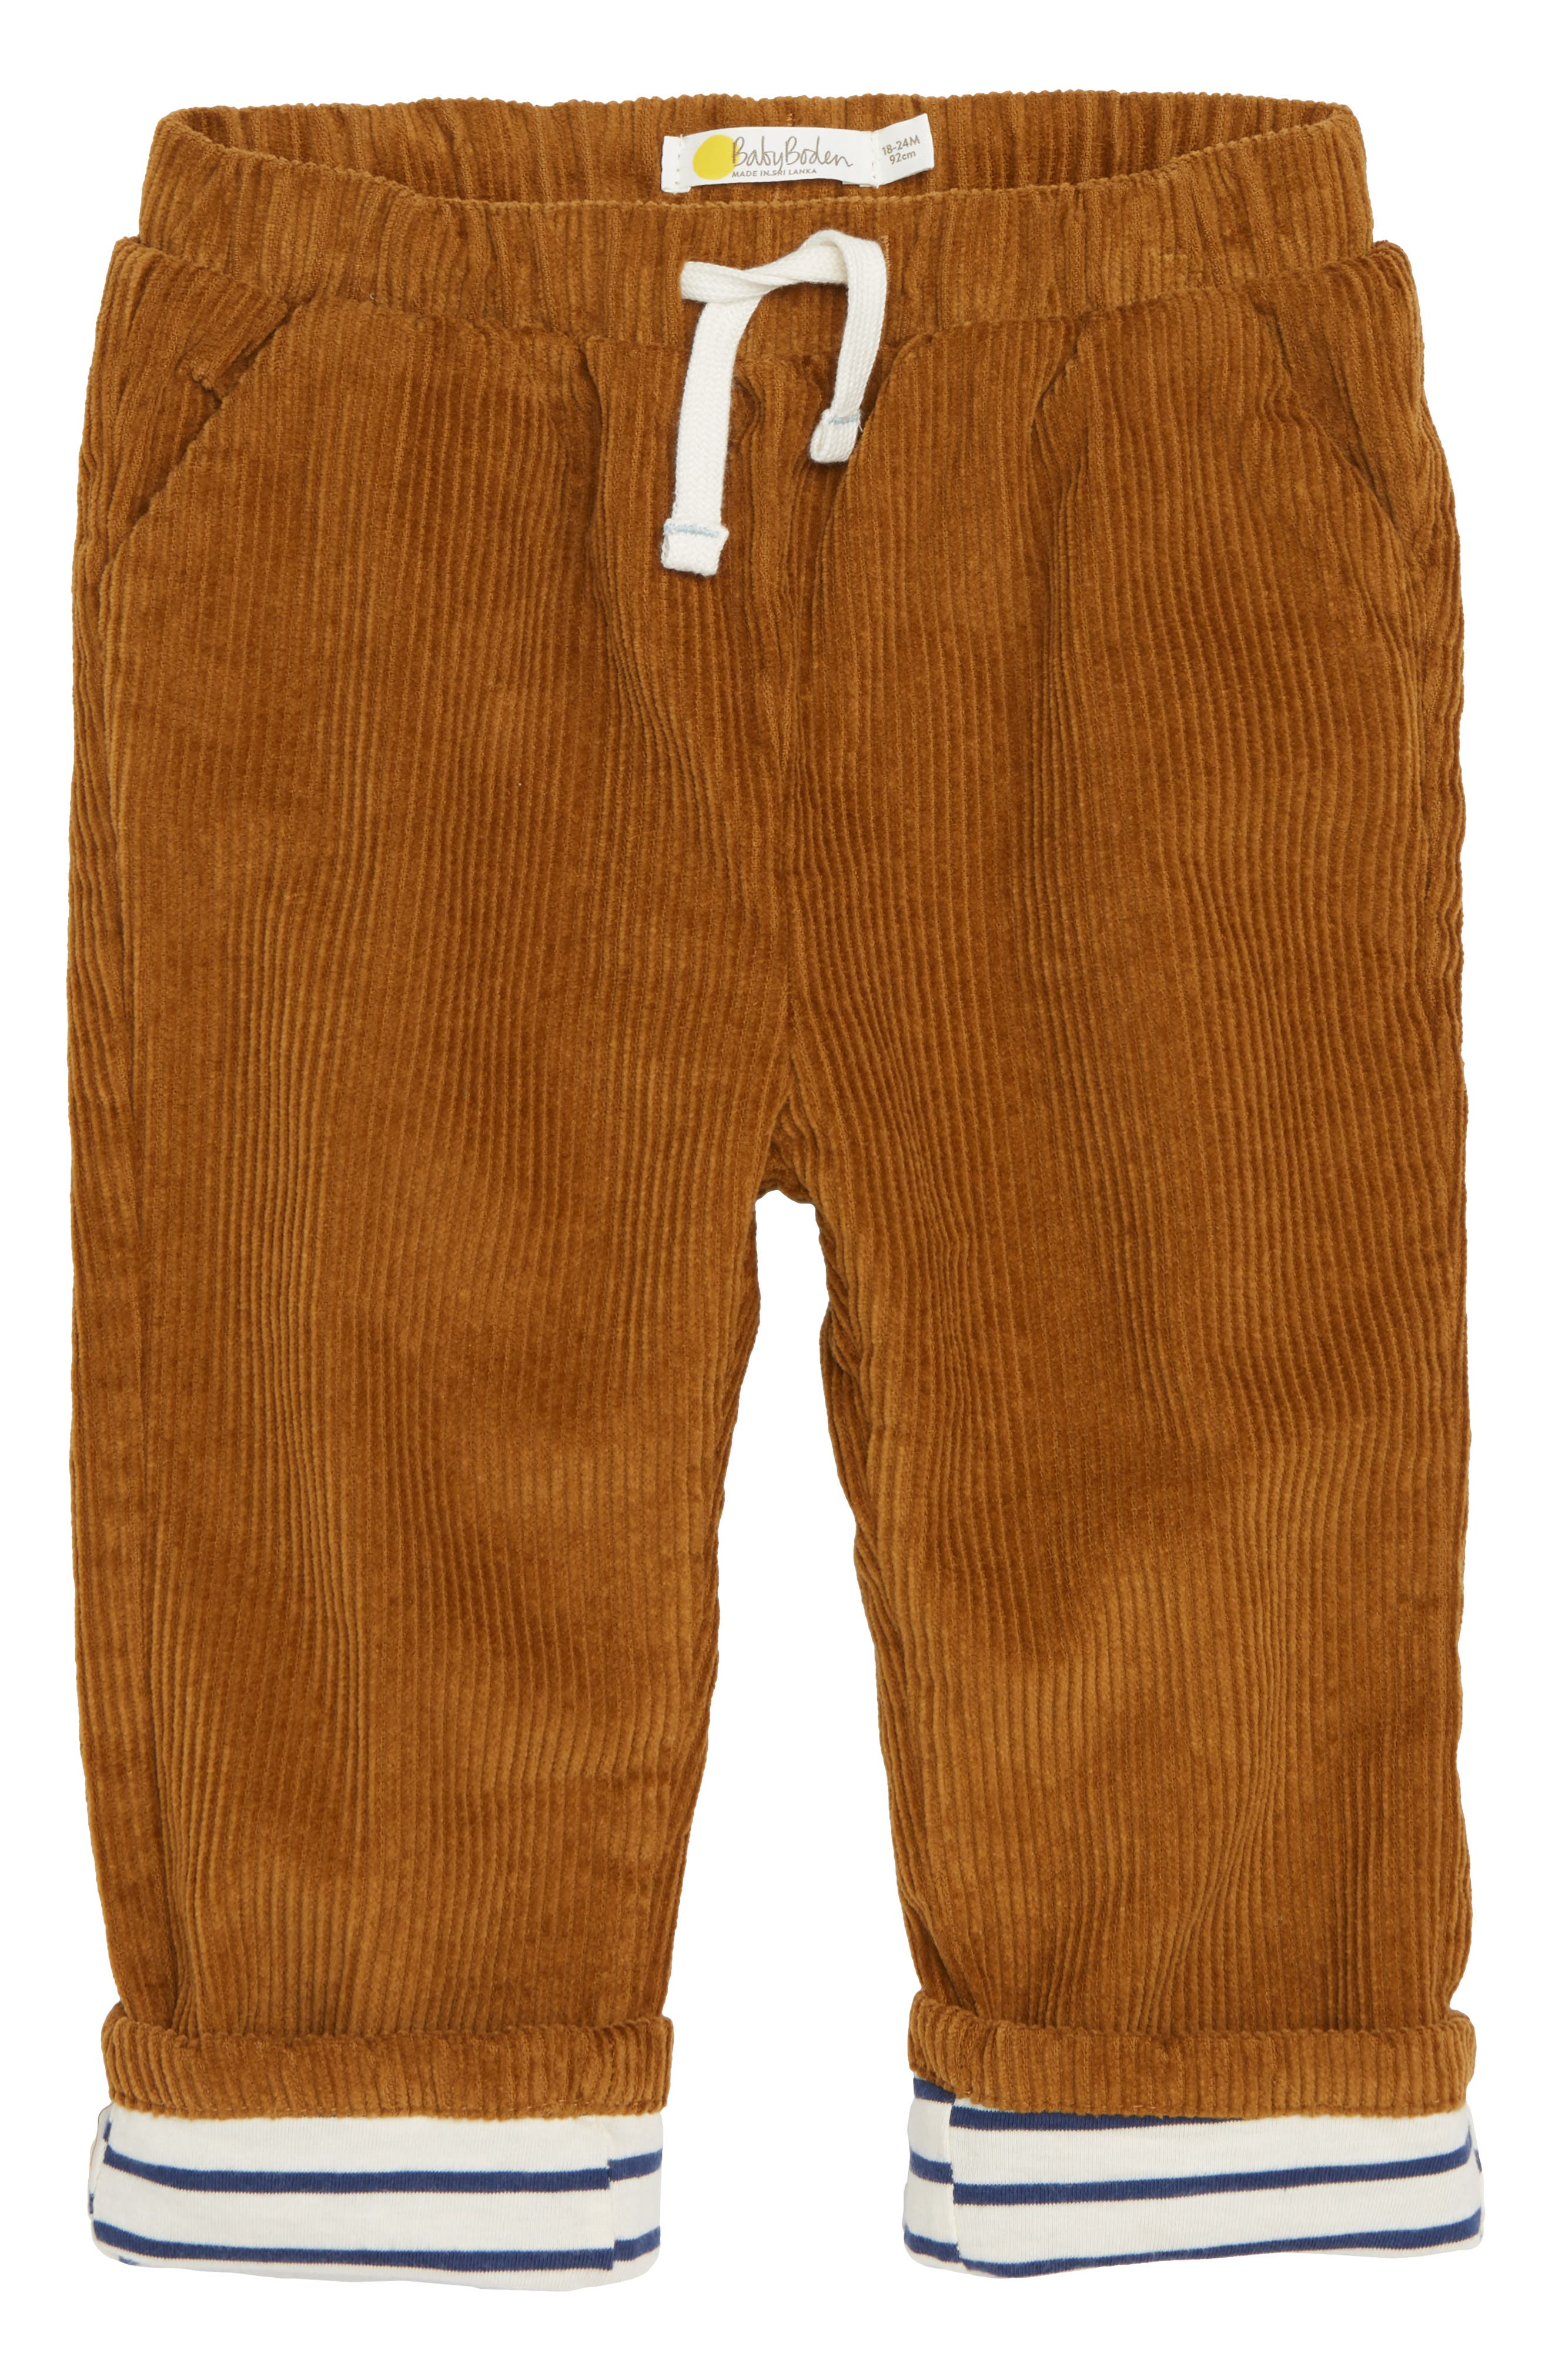 Lined Corduroy Trousers,                             Main thumbnail 1, color,                             TEDDY BEAR BROWN